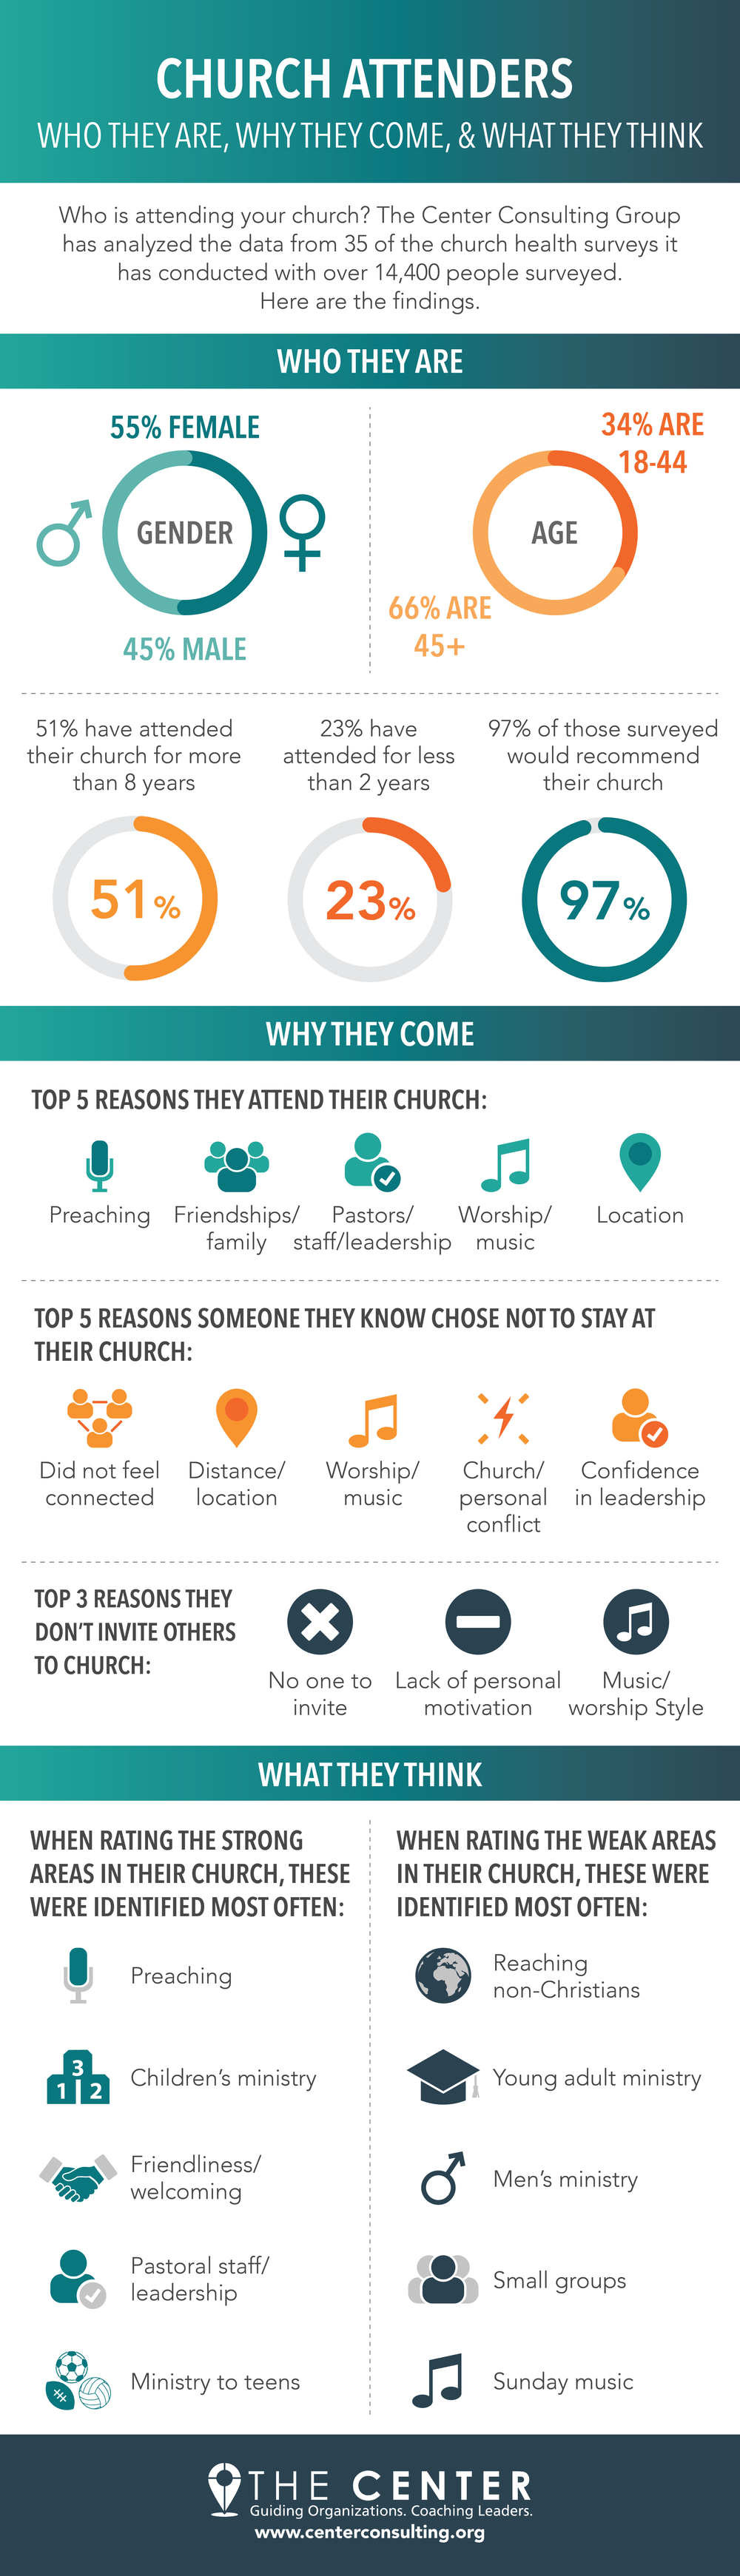 Who Attends Your Church, Why They Come, and What They Think of Church Ministries [Infographic Data] - The Center Consulting Group - Leadership Coaching and Organizational Consulting for Businesses, Non-profits, and Churches